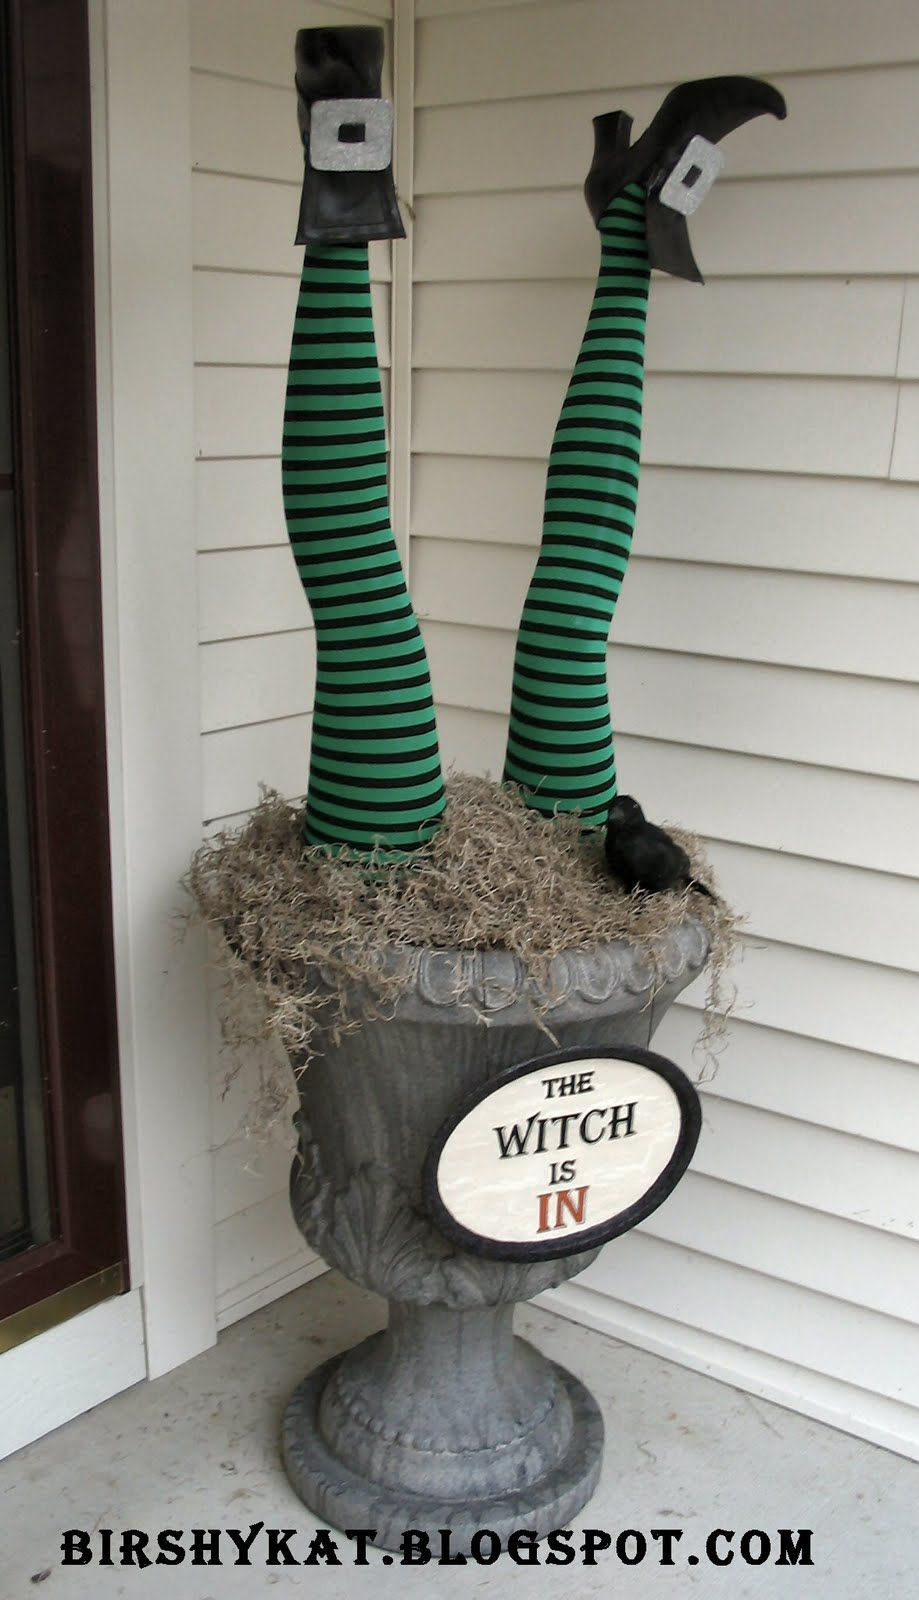 Halloween Urn Decorations 50 Chilling And Thrilling Halloween Porch Decorations  Urn